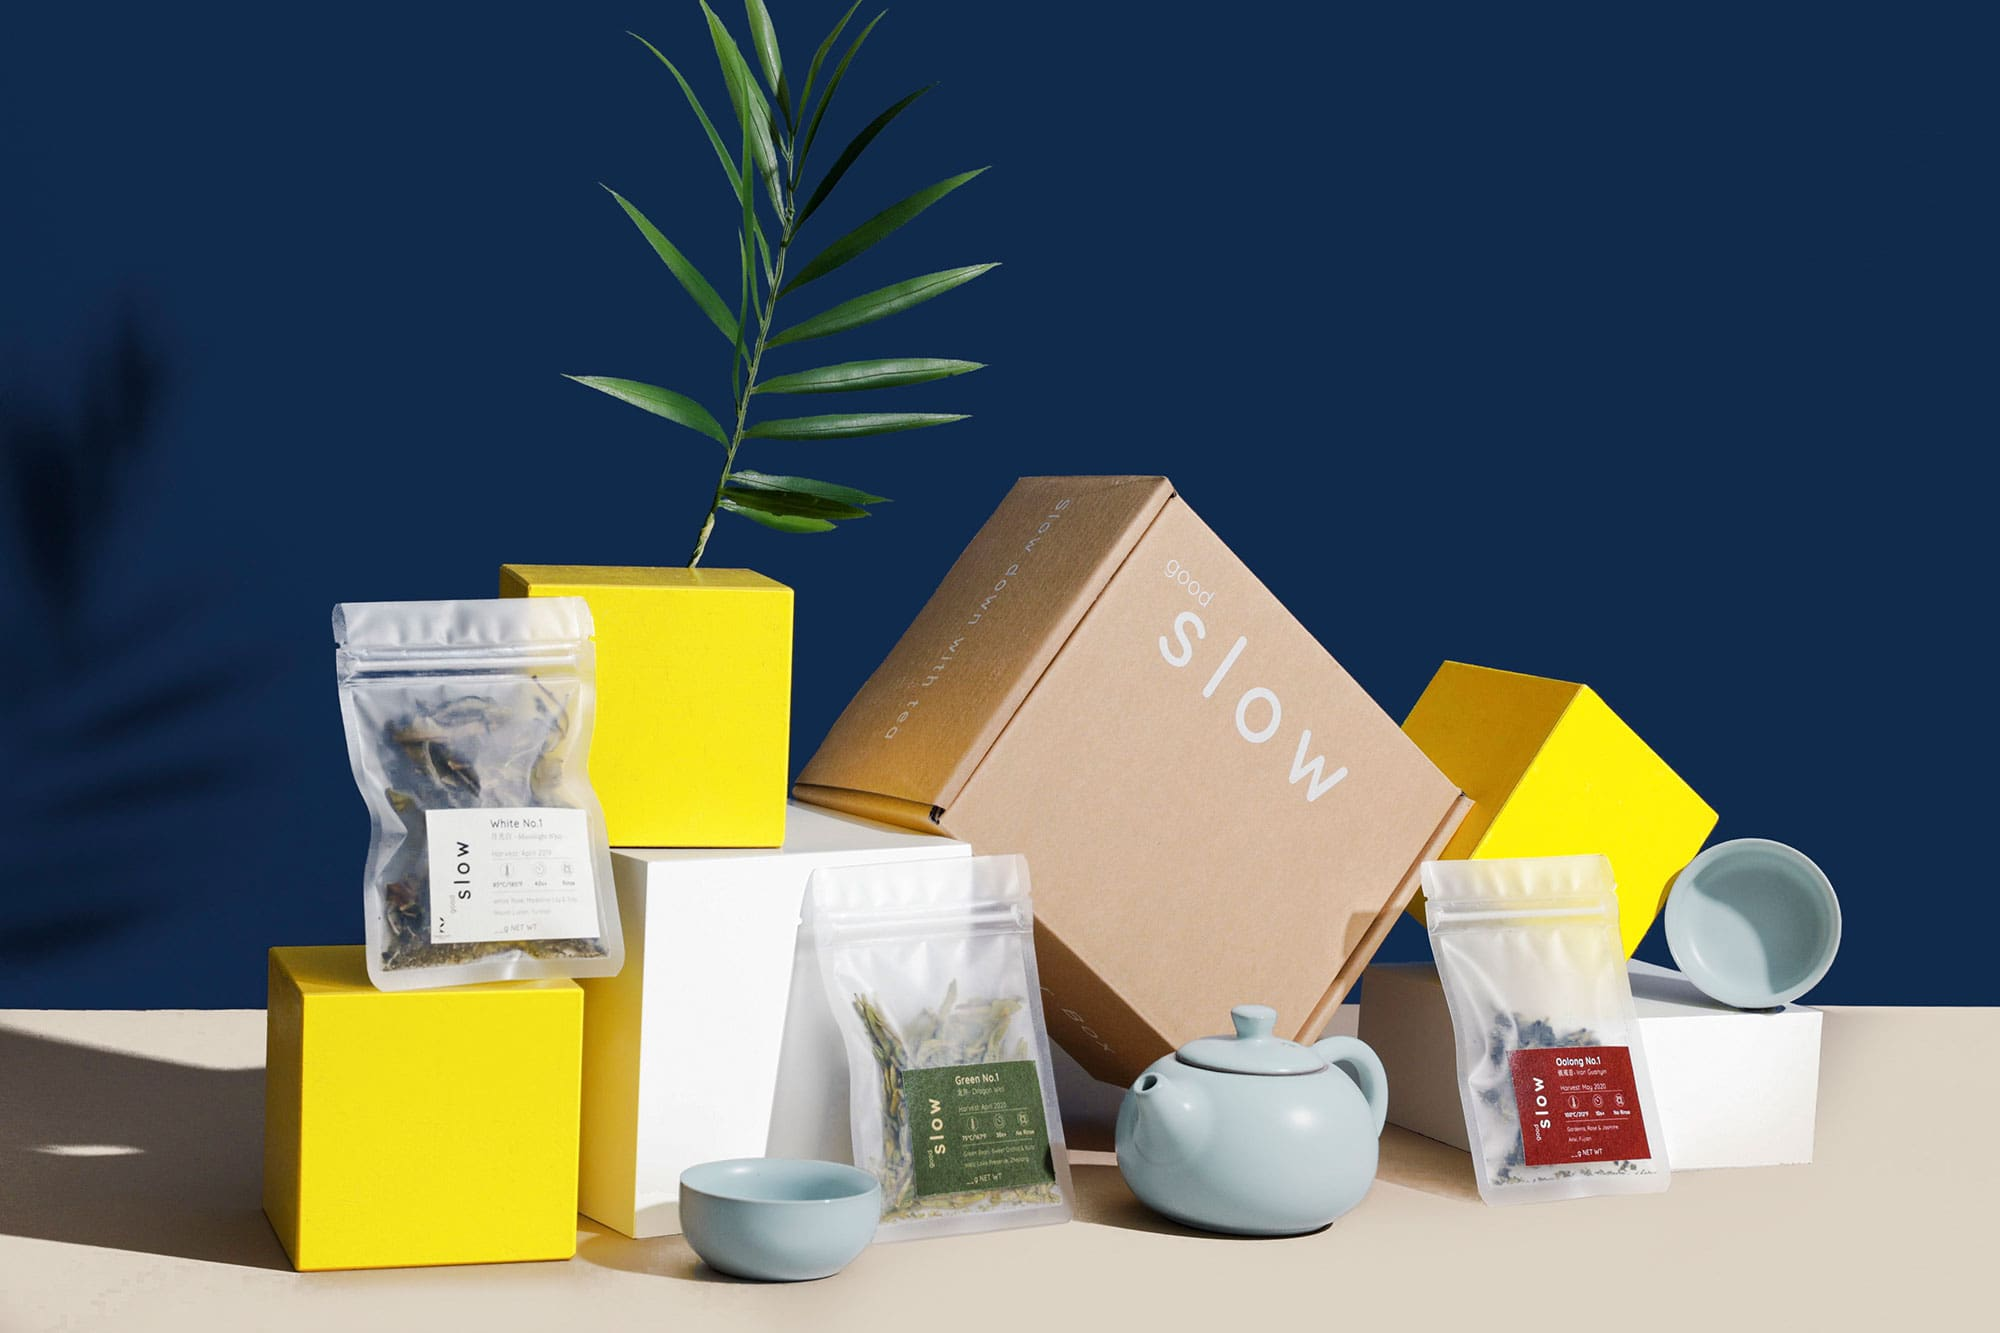 goodSlow discover box with tea, teaware and guided recordings